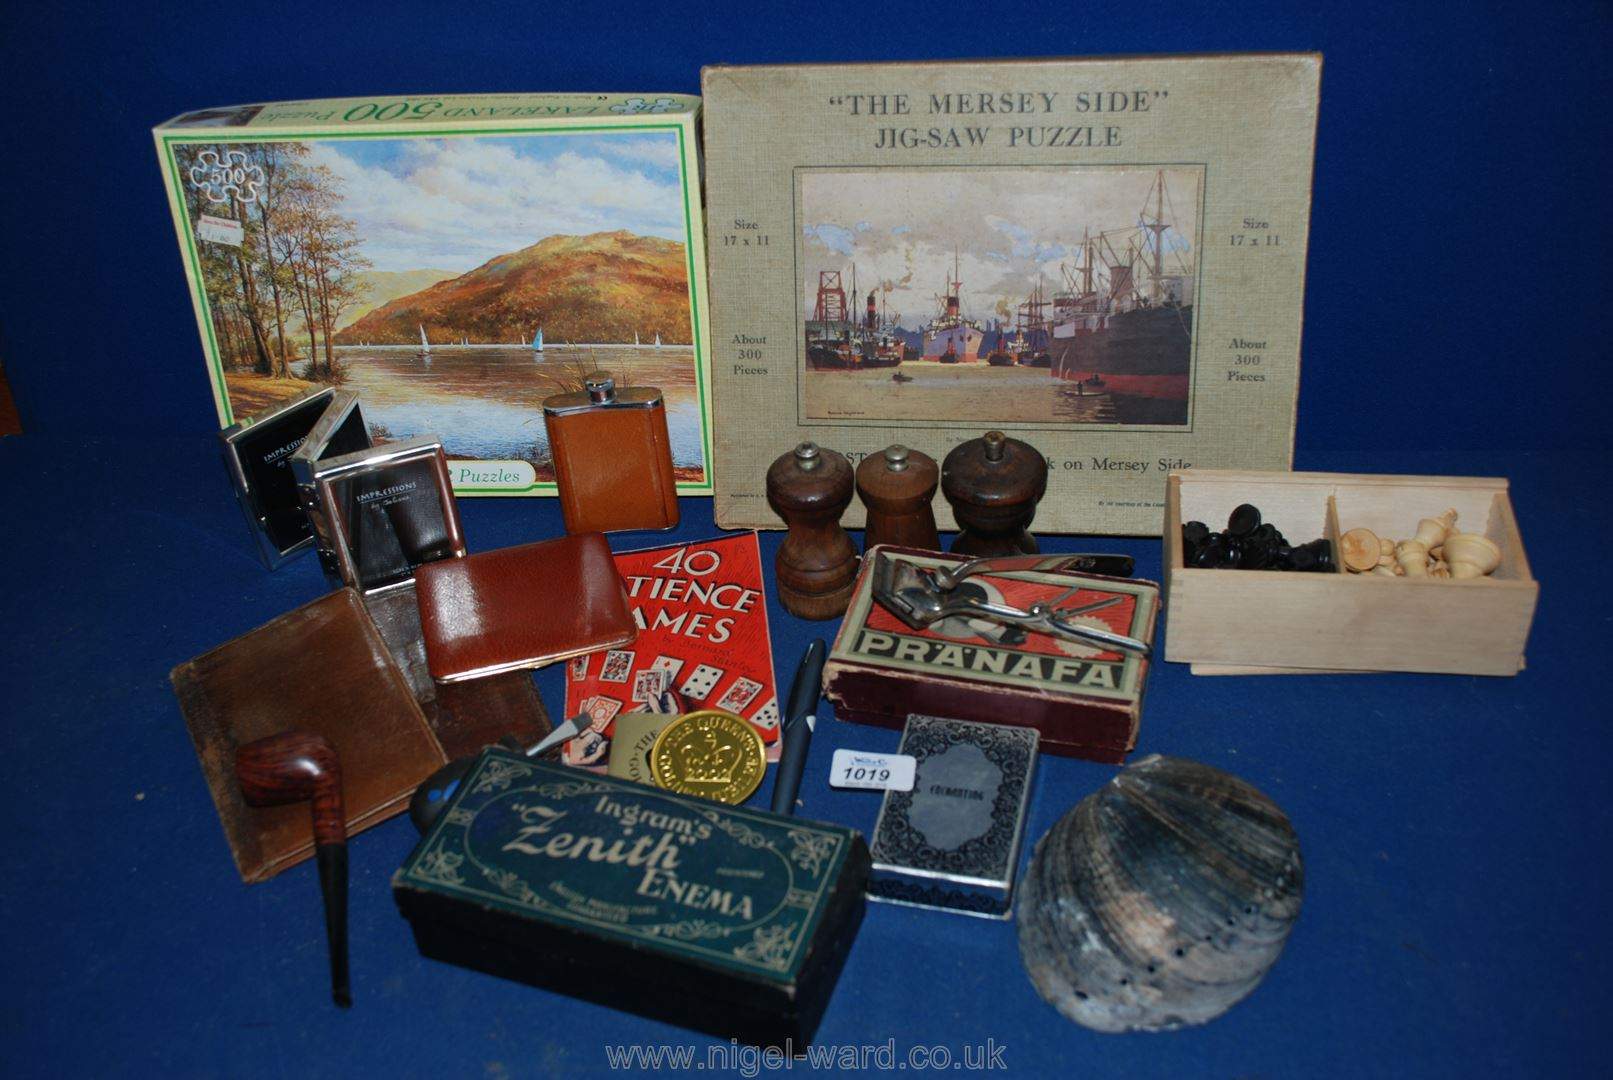 Lot 1019 - A quantity of miscellanea including wooden jigsaw puzzle 'The Merseyside', salt and pepper mills,